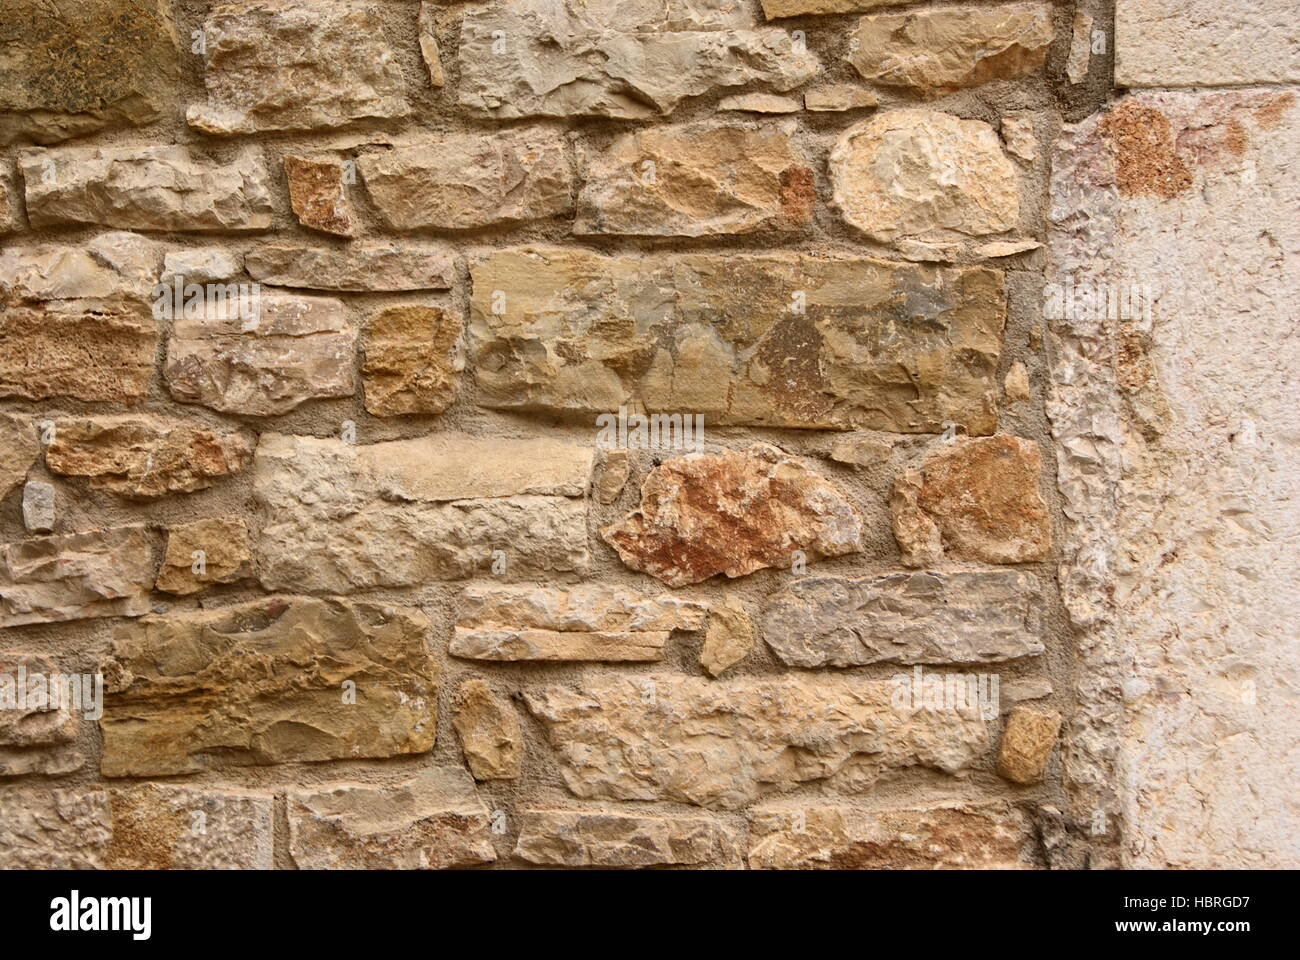 Rustic Stone Background Stock Photo 127751603